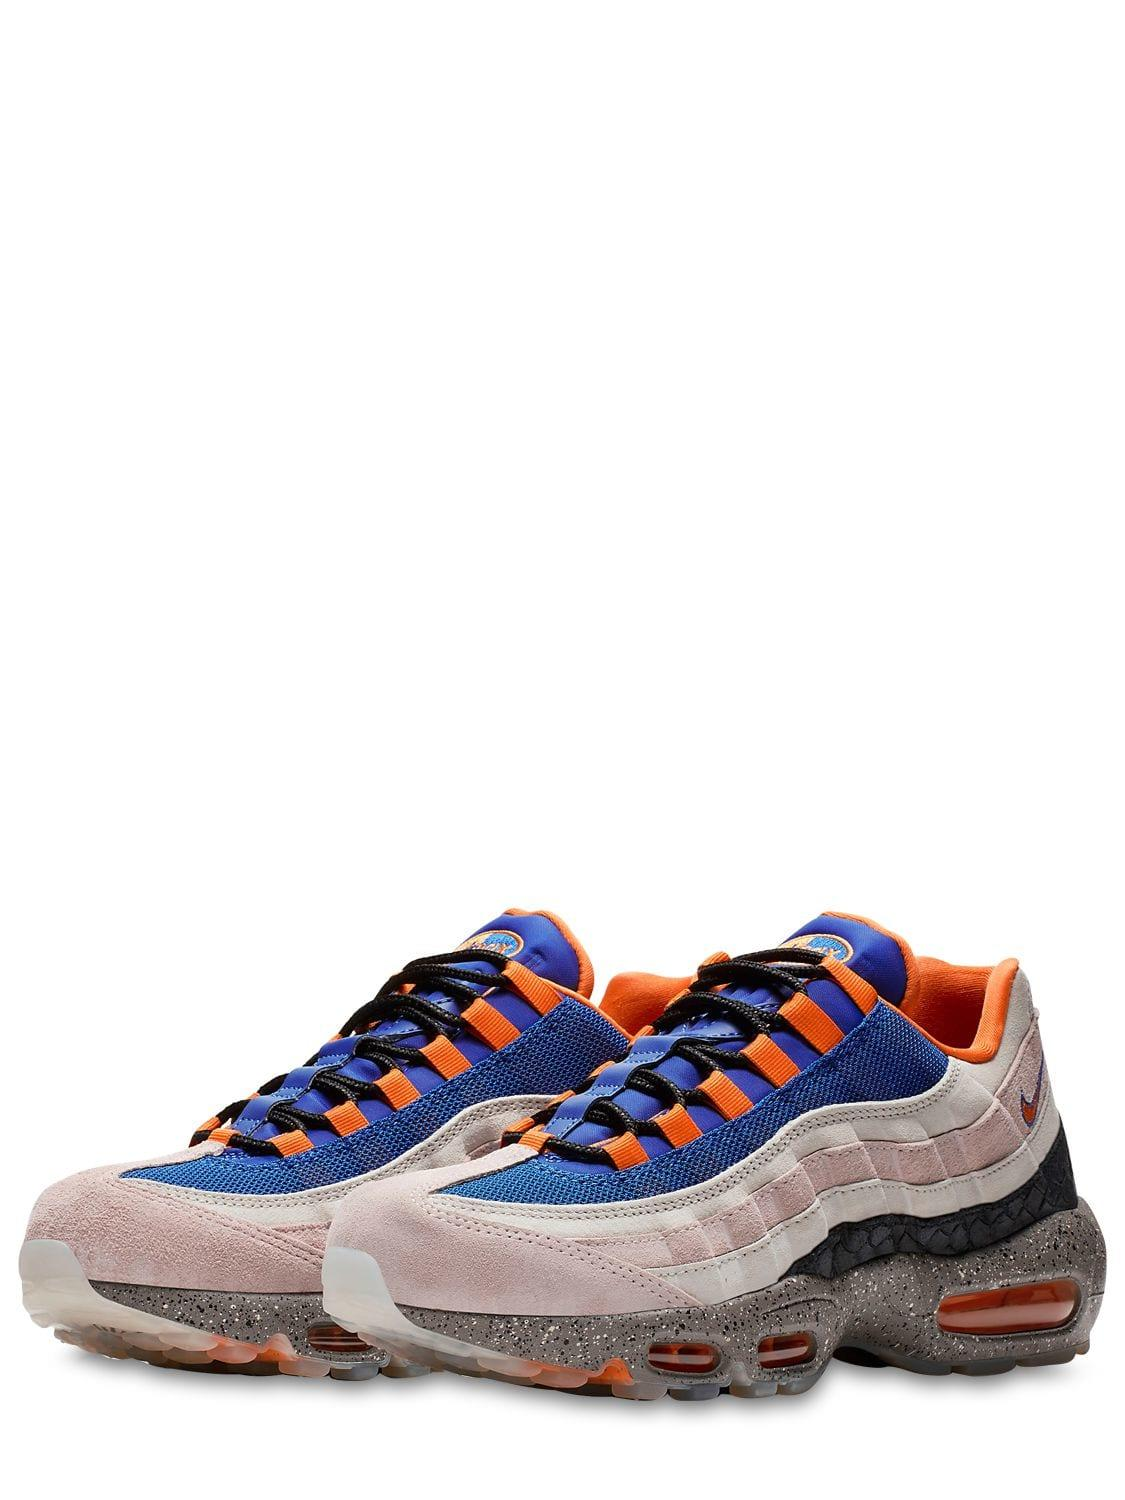 775c1f4ee6e Lyst - Nike Air Max 95 We Sneakers in Blue for Men